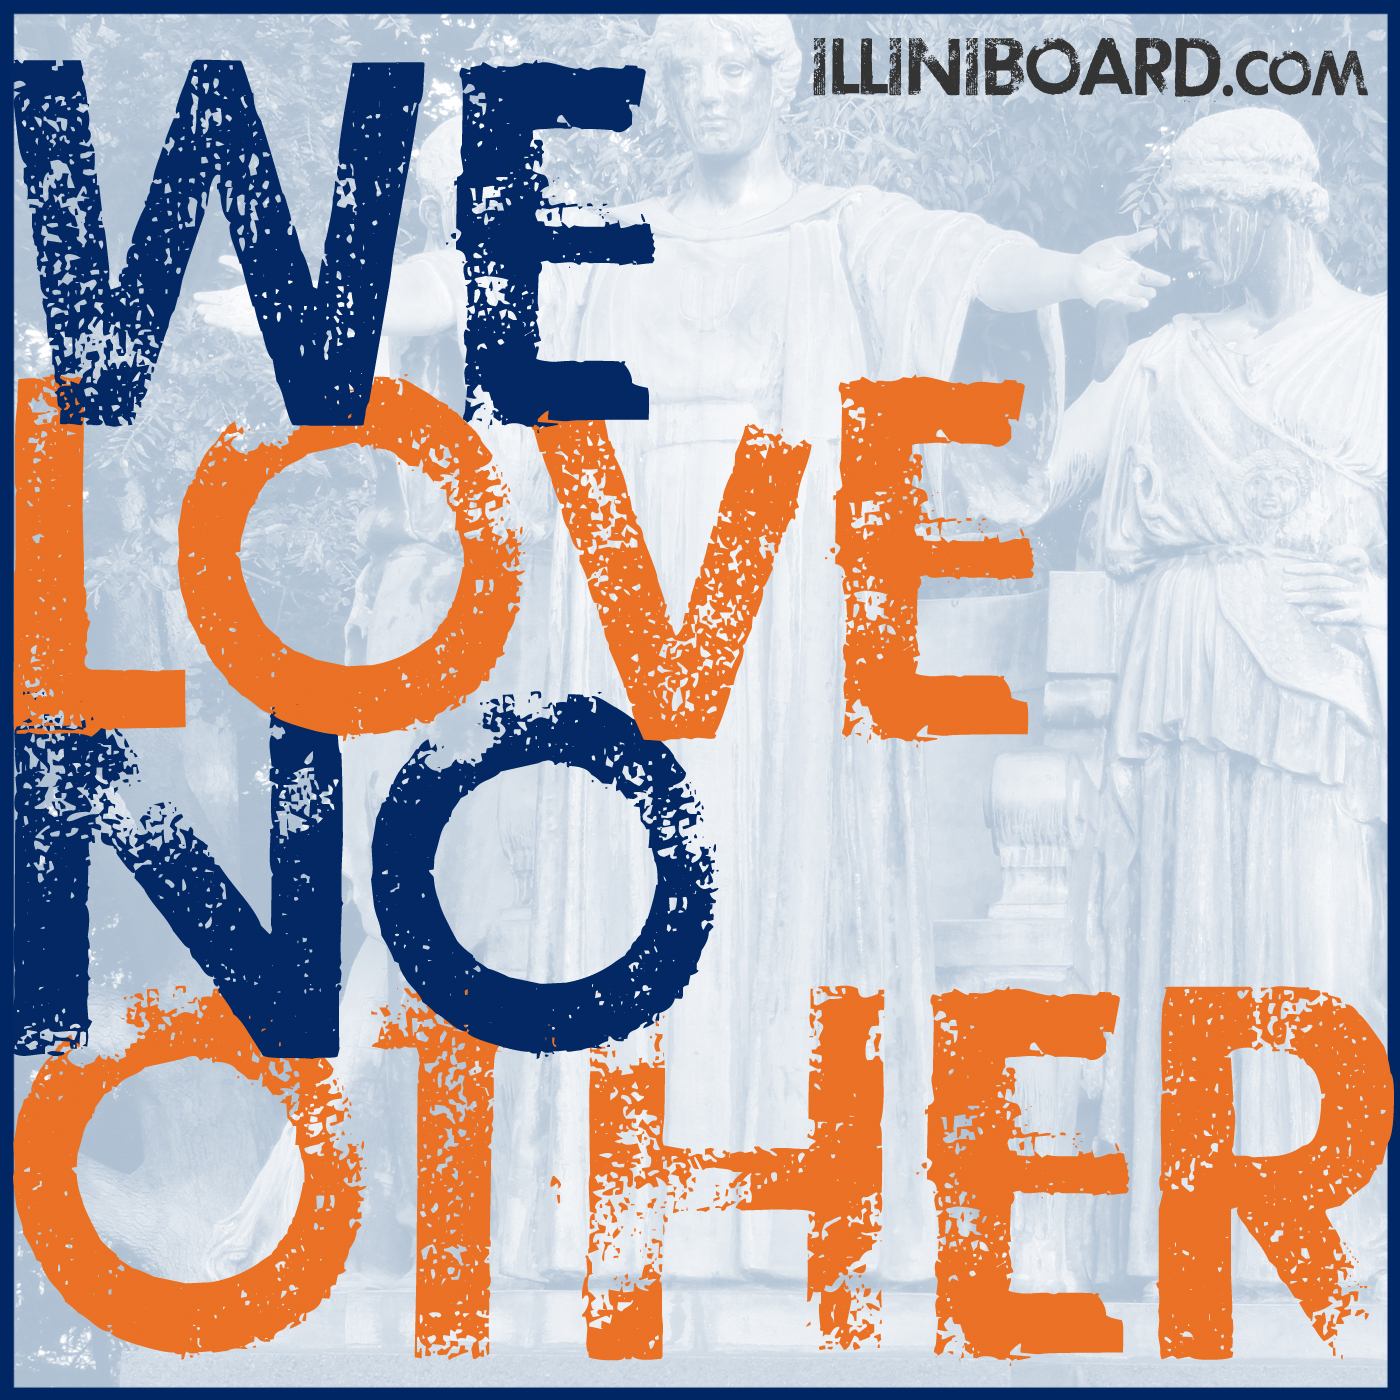 We Love No Other – IlliniBoard.com